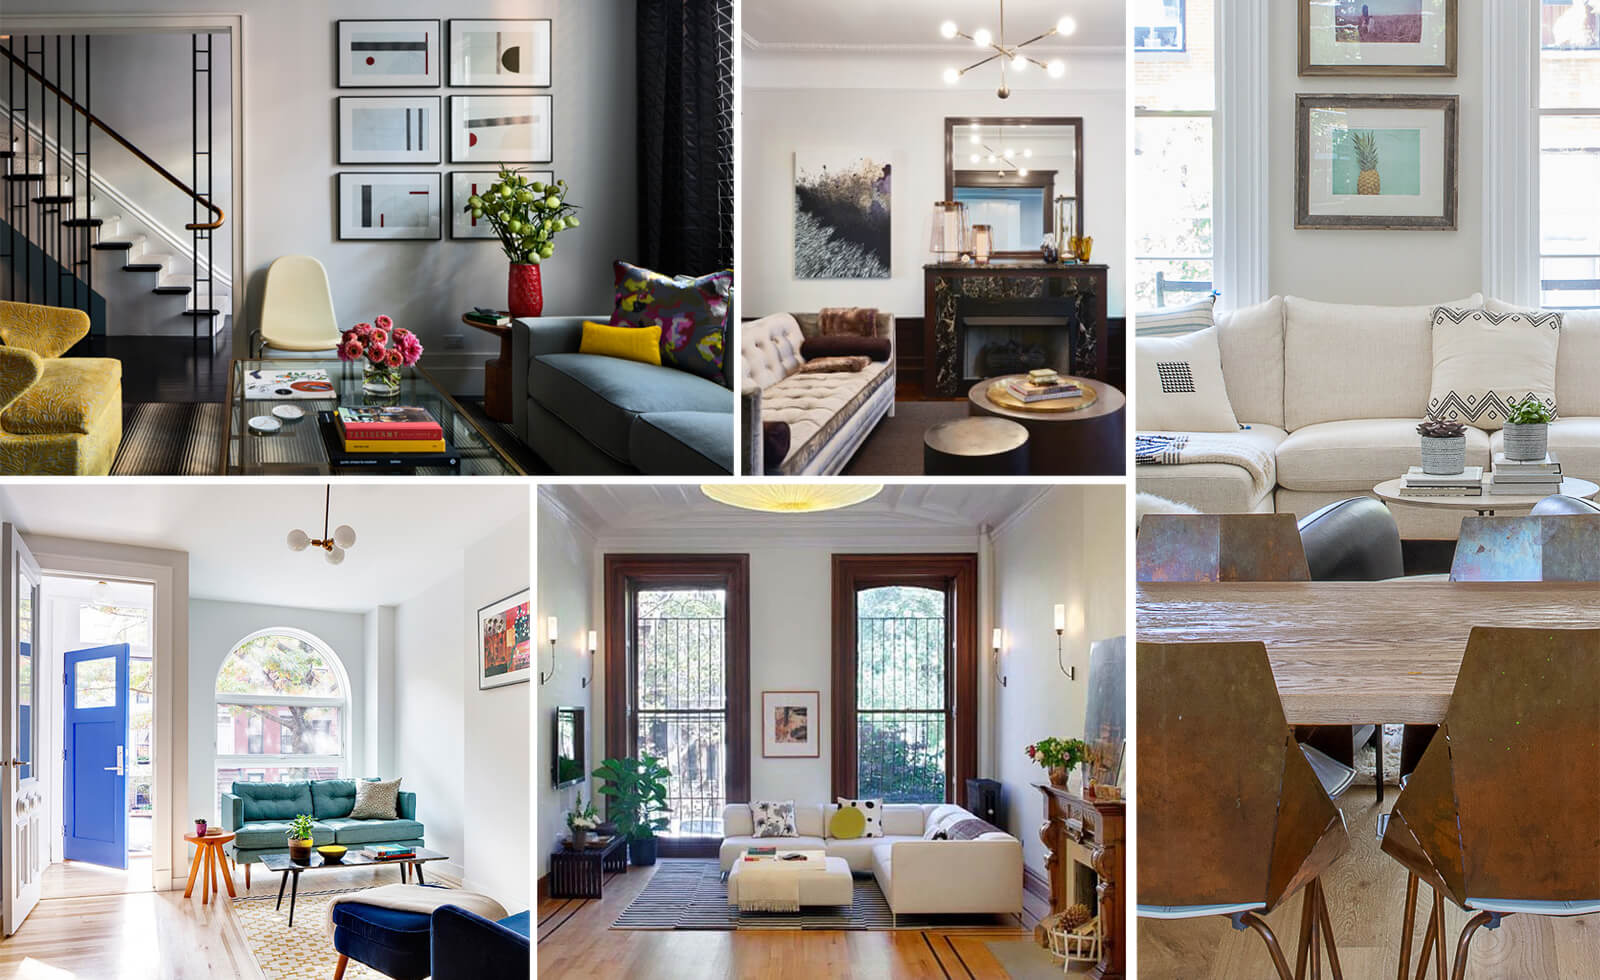 Best Pro Tips On How To Arrange Furniture In A Brownstone Brownstoner